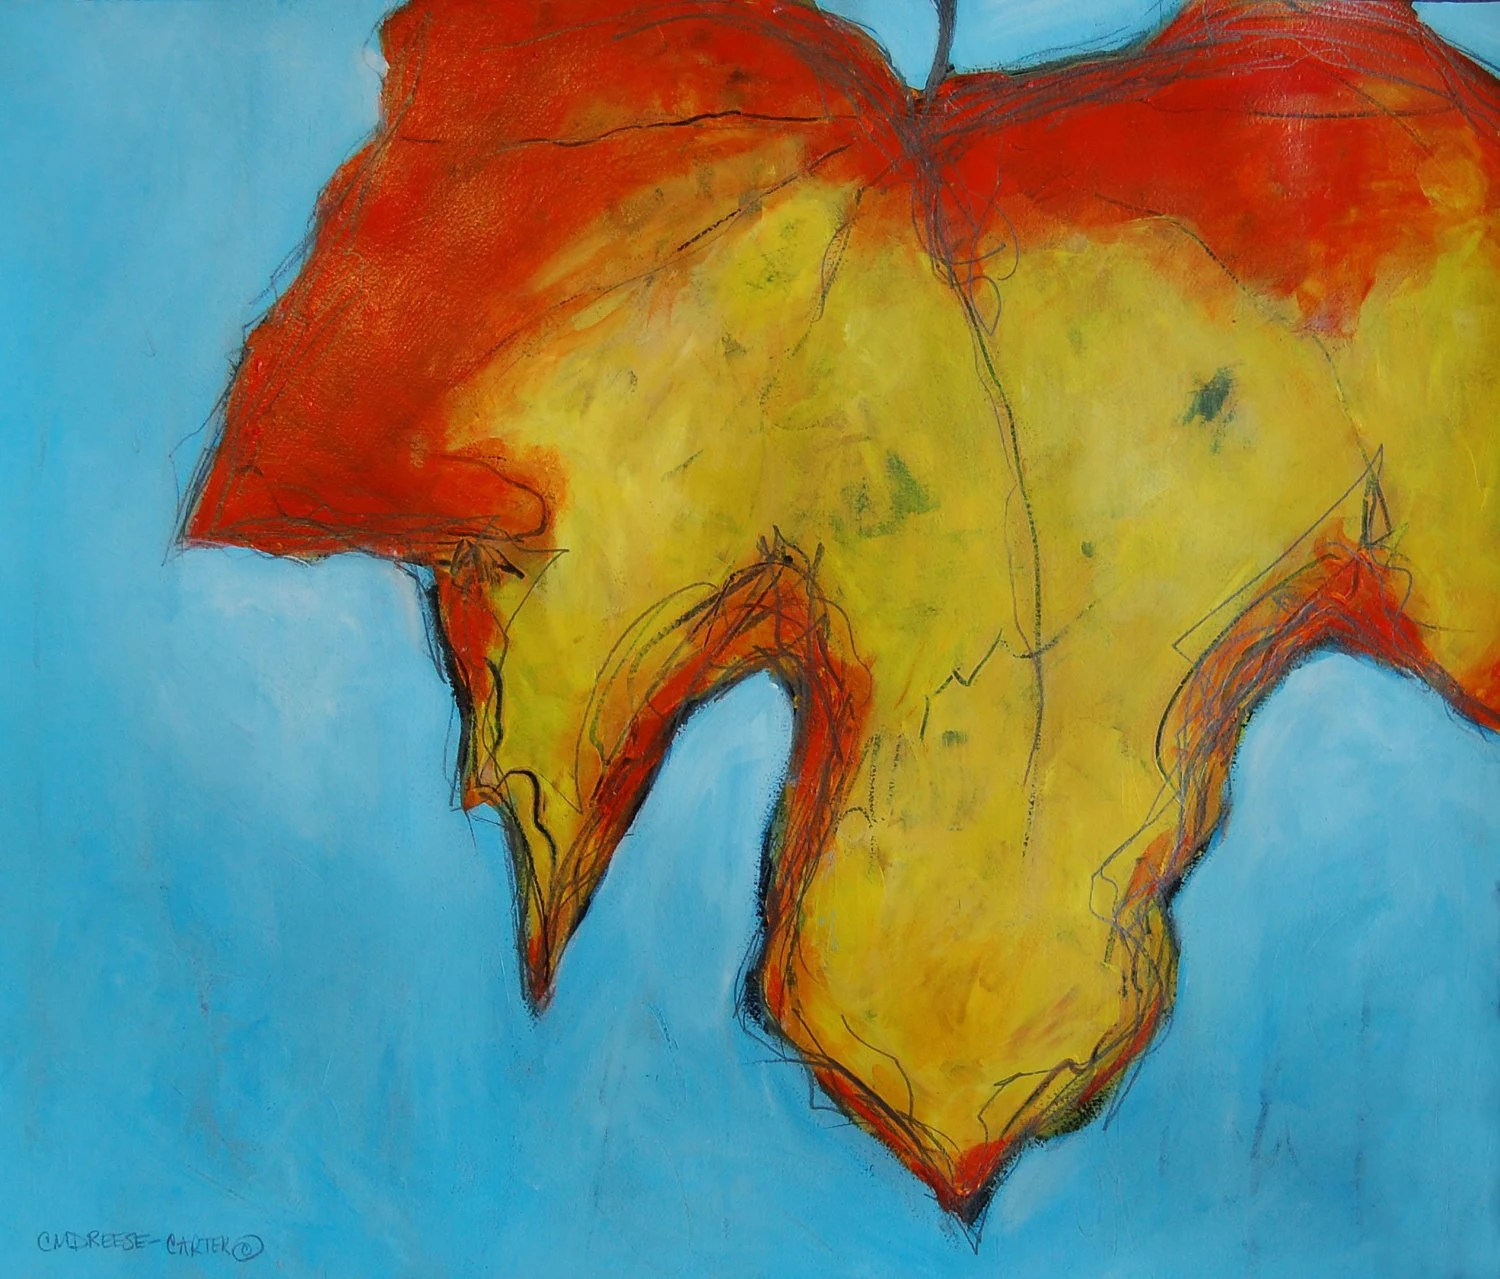 Print - 11 x 14  A Time for Change - Maple Leaf Contemporary Print from original painting by Christi Dreese